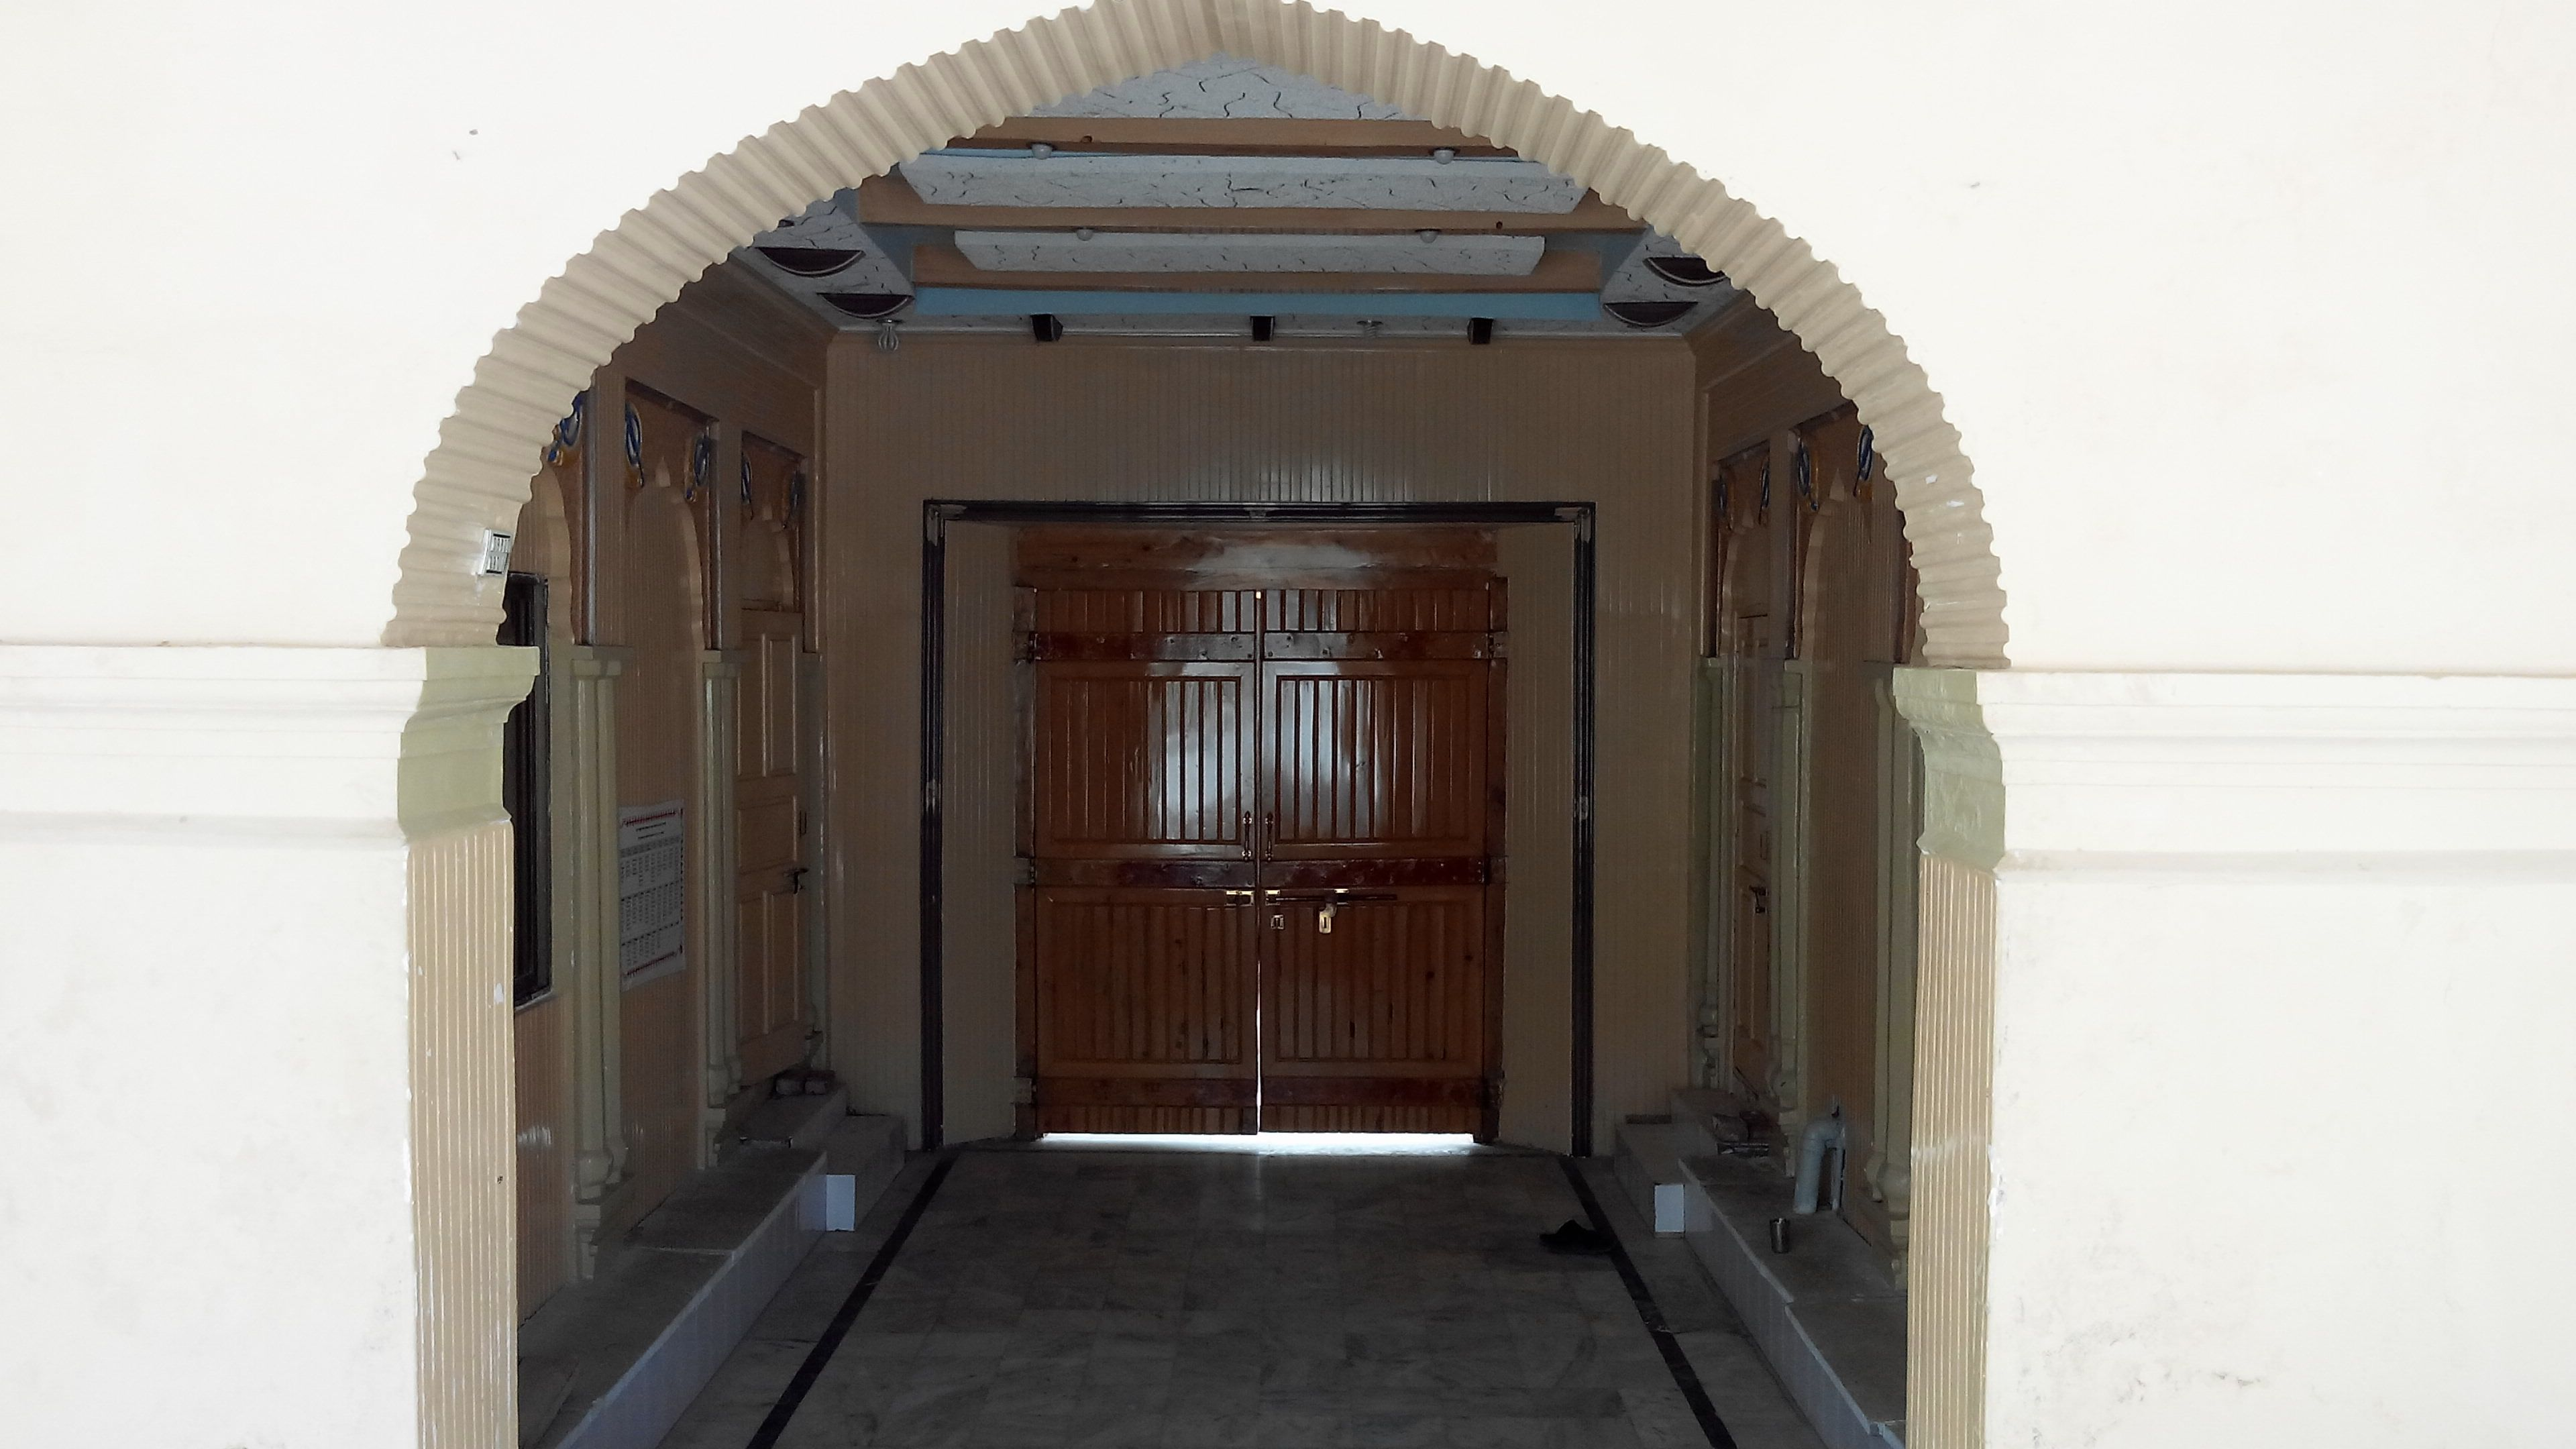 Entrance to Gurdwara Janam Asthan at Nankana Sahib